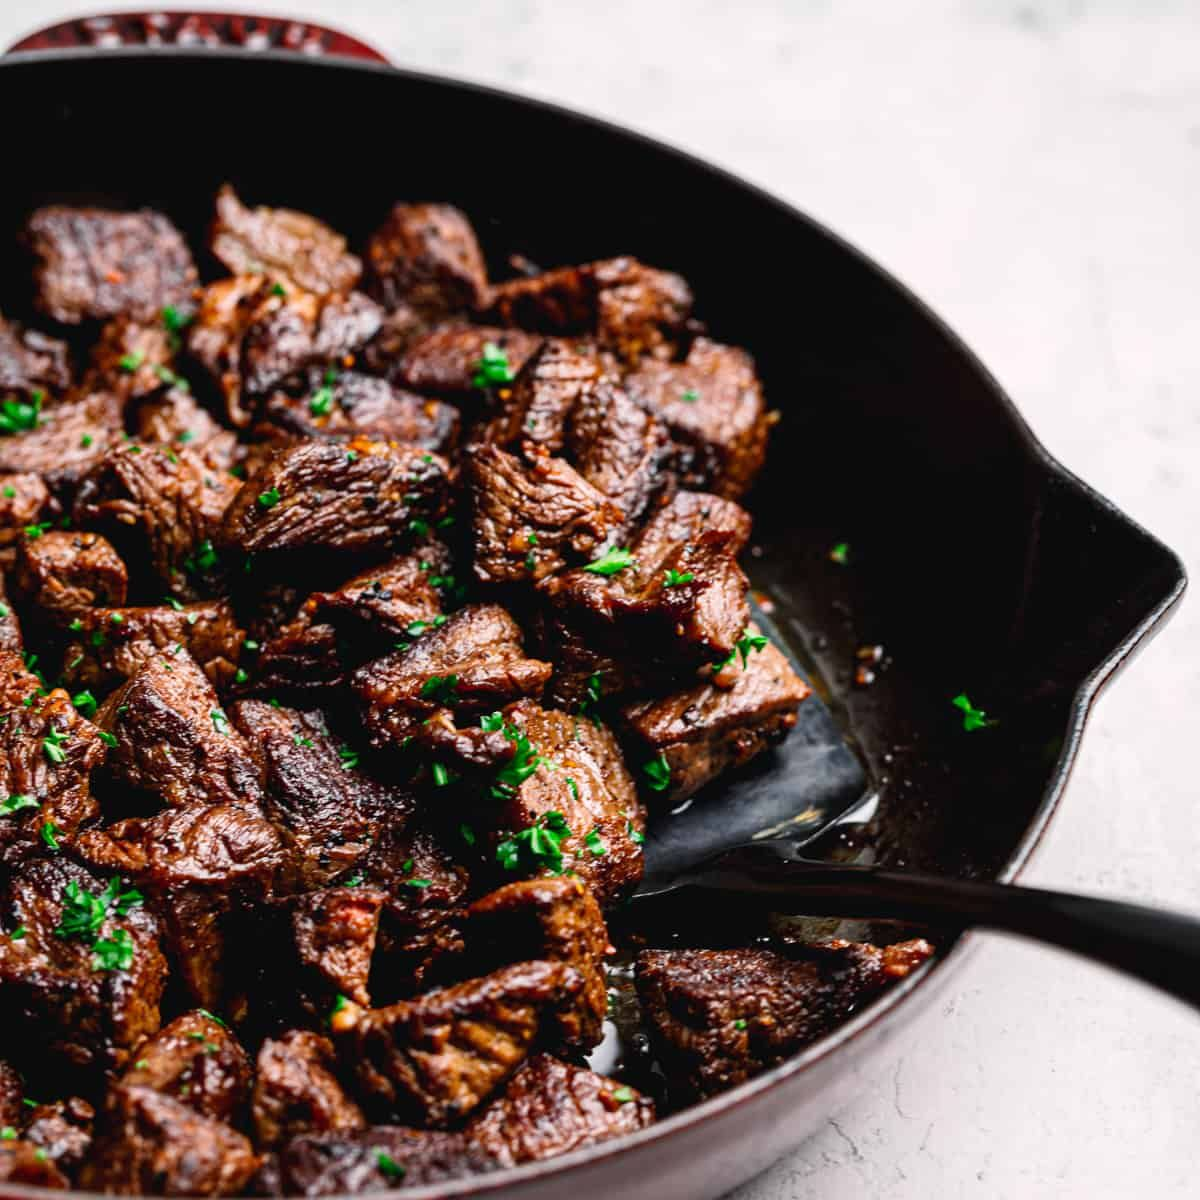 A partial shot of a skillet filled with steak bites and herbs